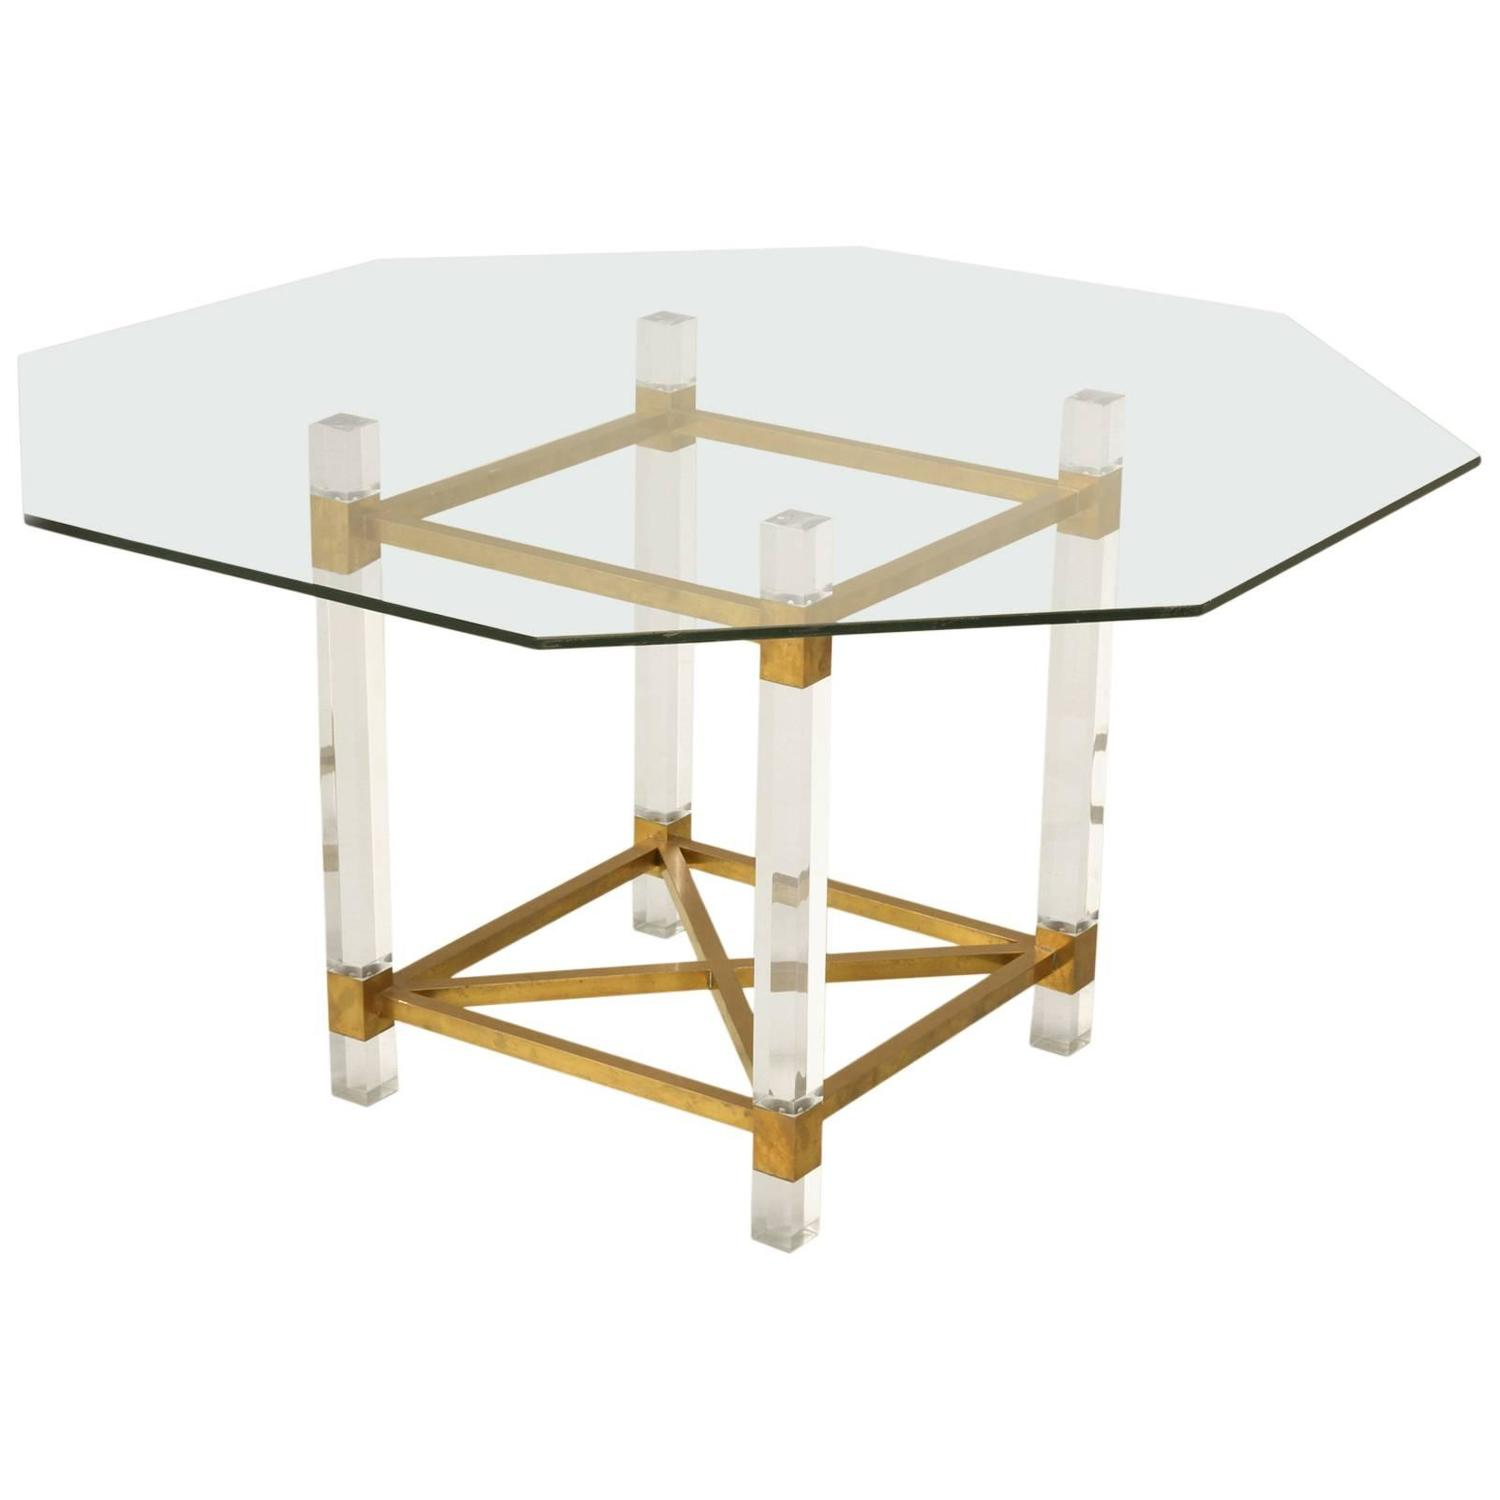 French acrylic and brass dining table for sale at 1stdibs